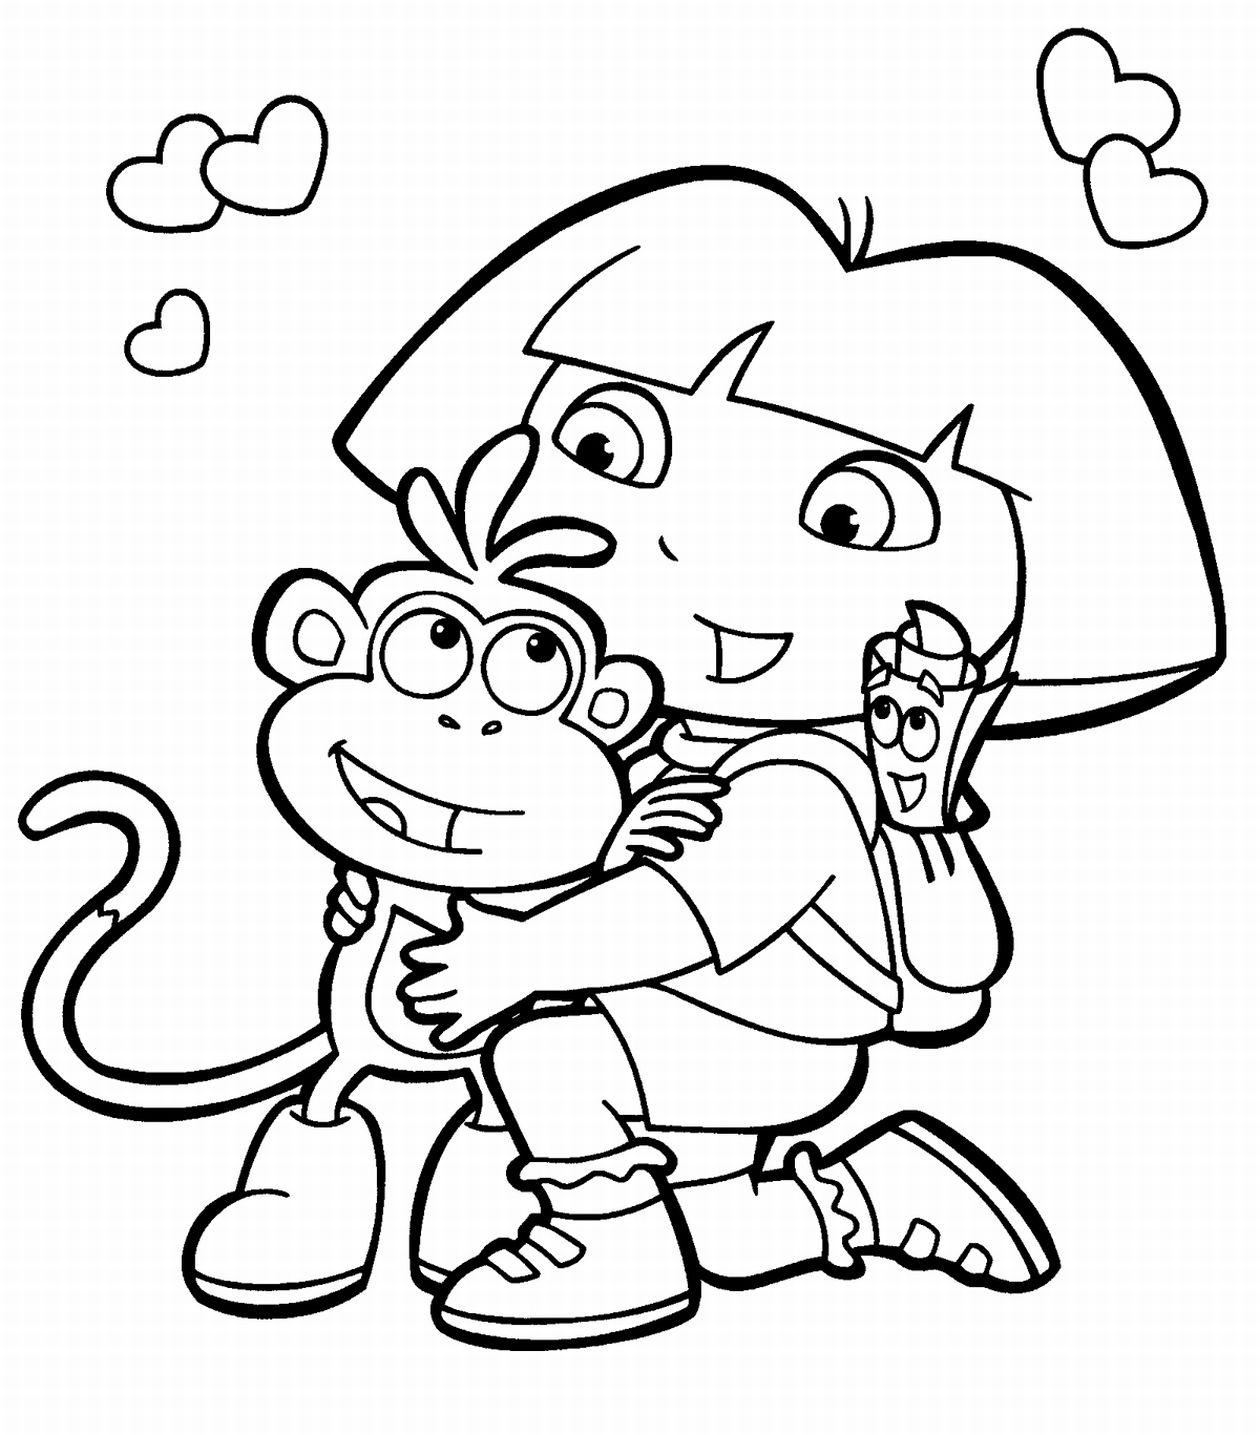 dora coloring pages online free dora coloring lots of dora coloring pages and printables free dora online coloring pages